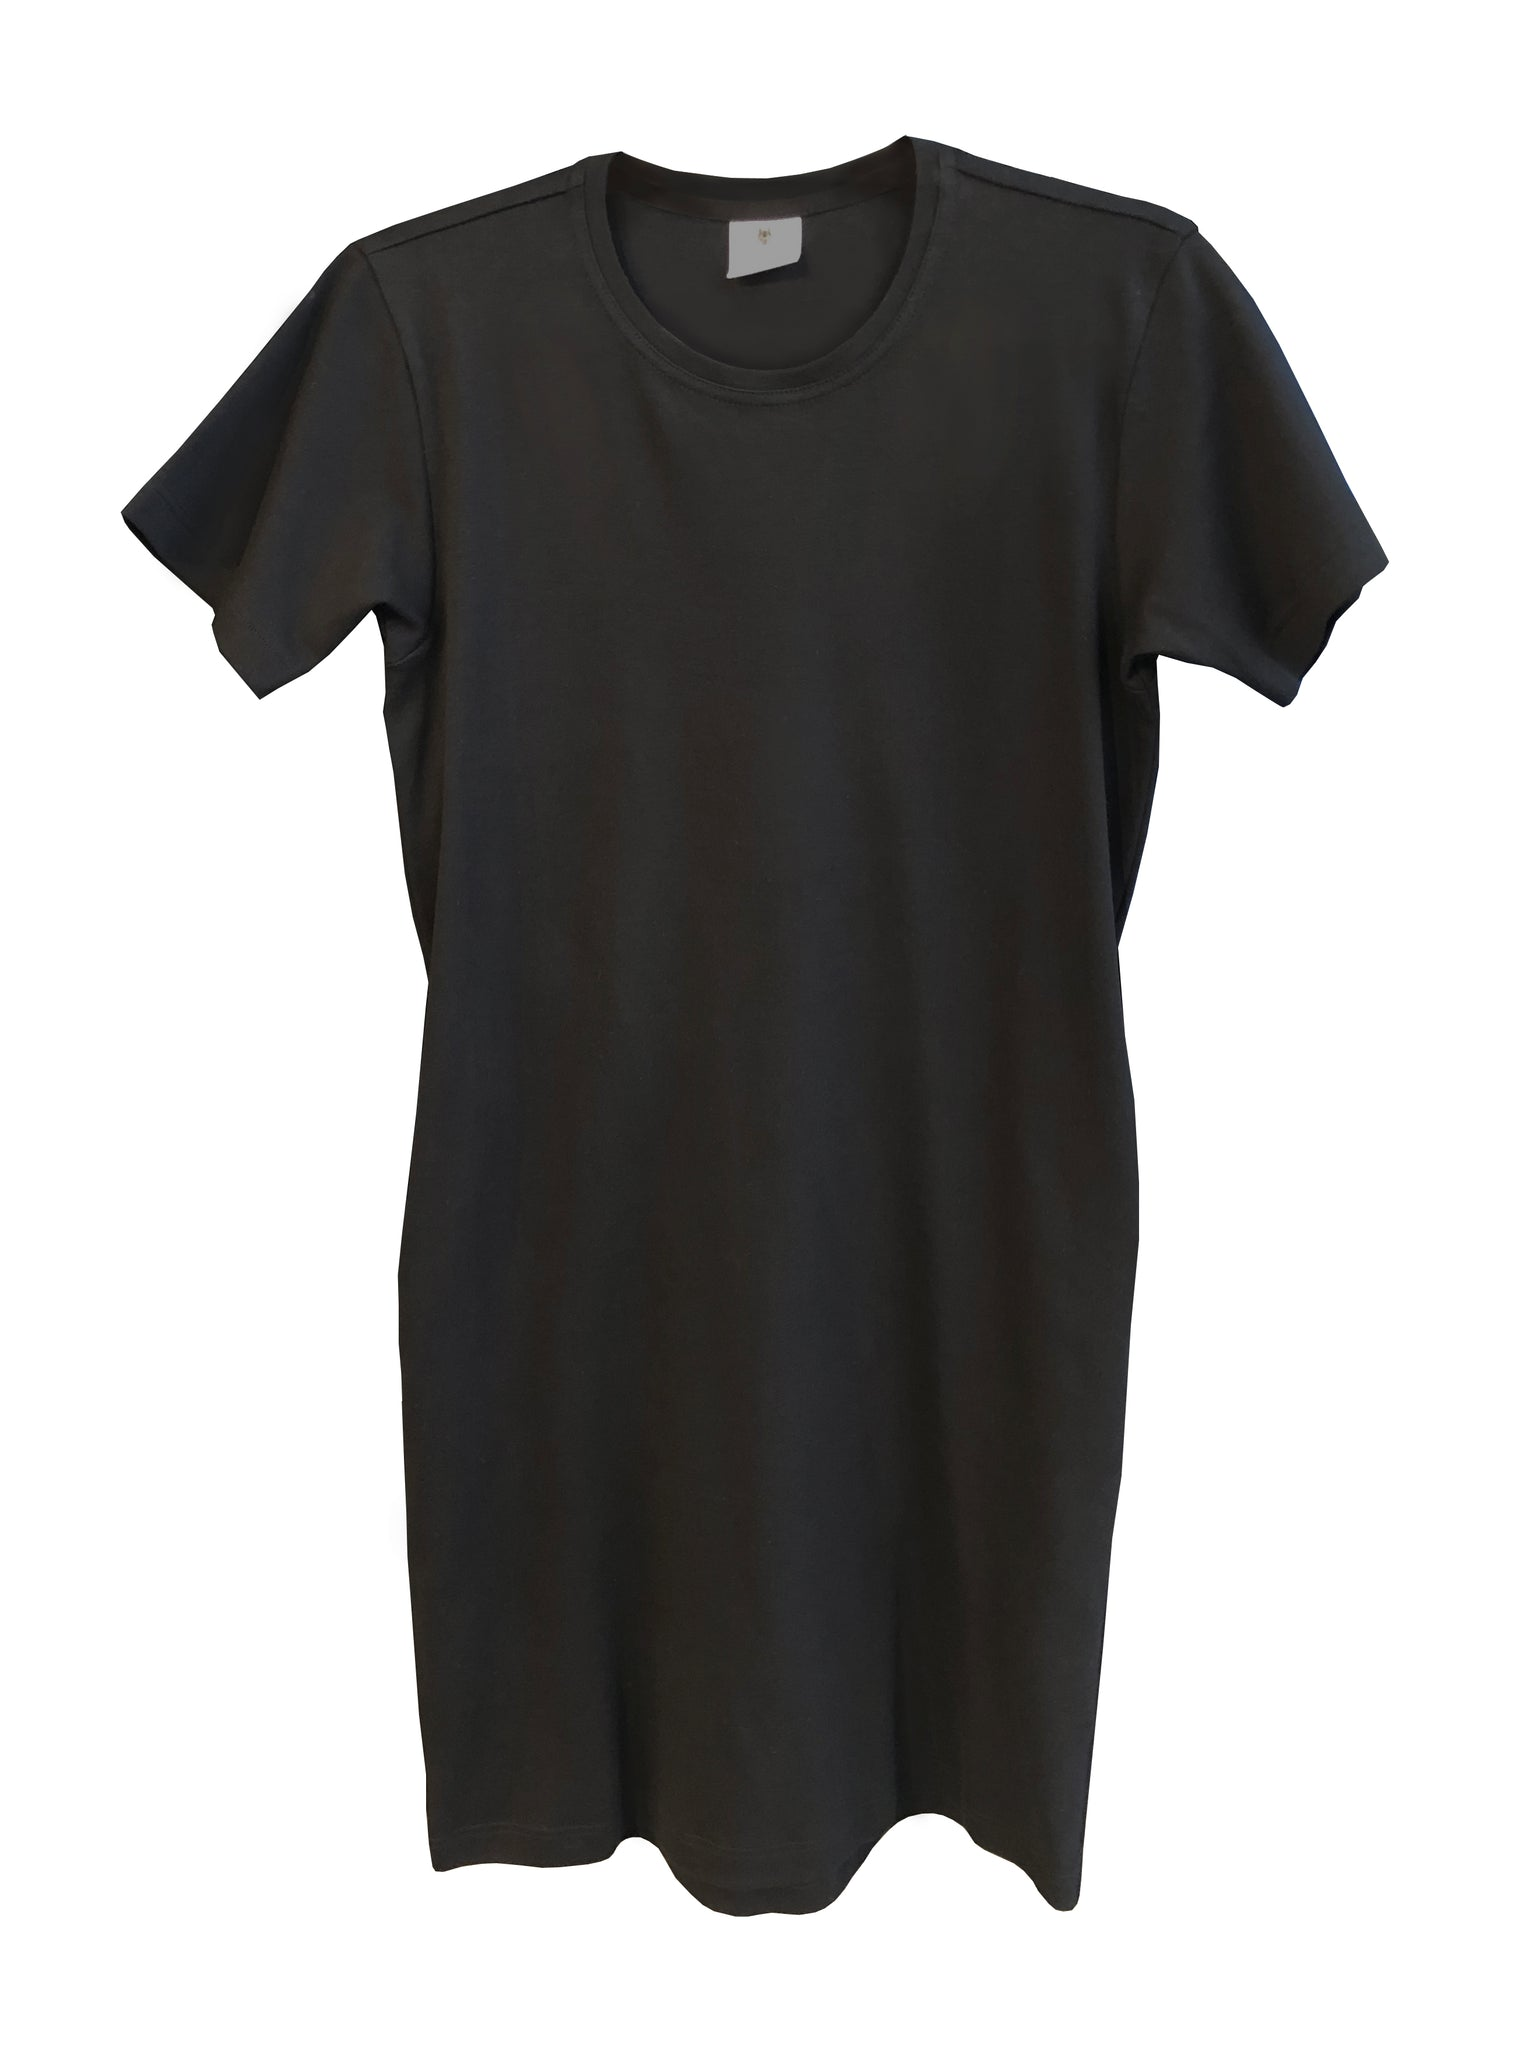 PLAIN T shirt dress - One Wolf